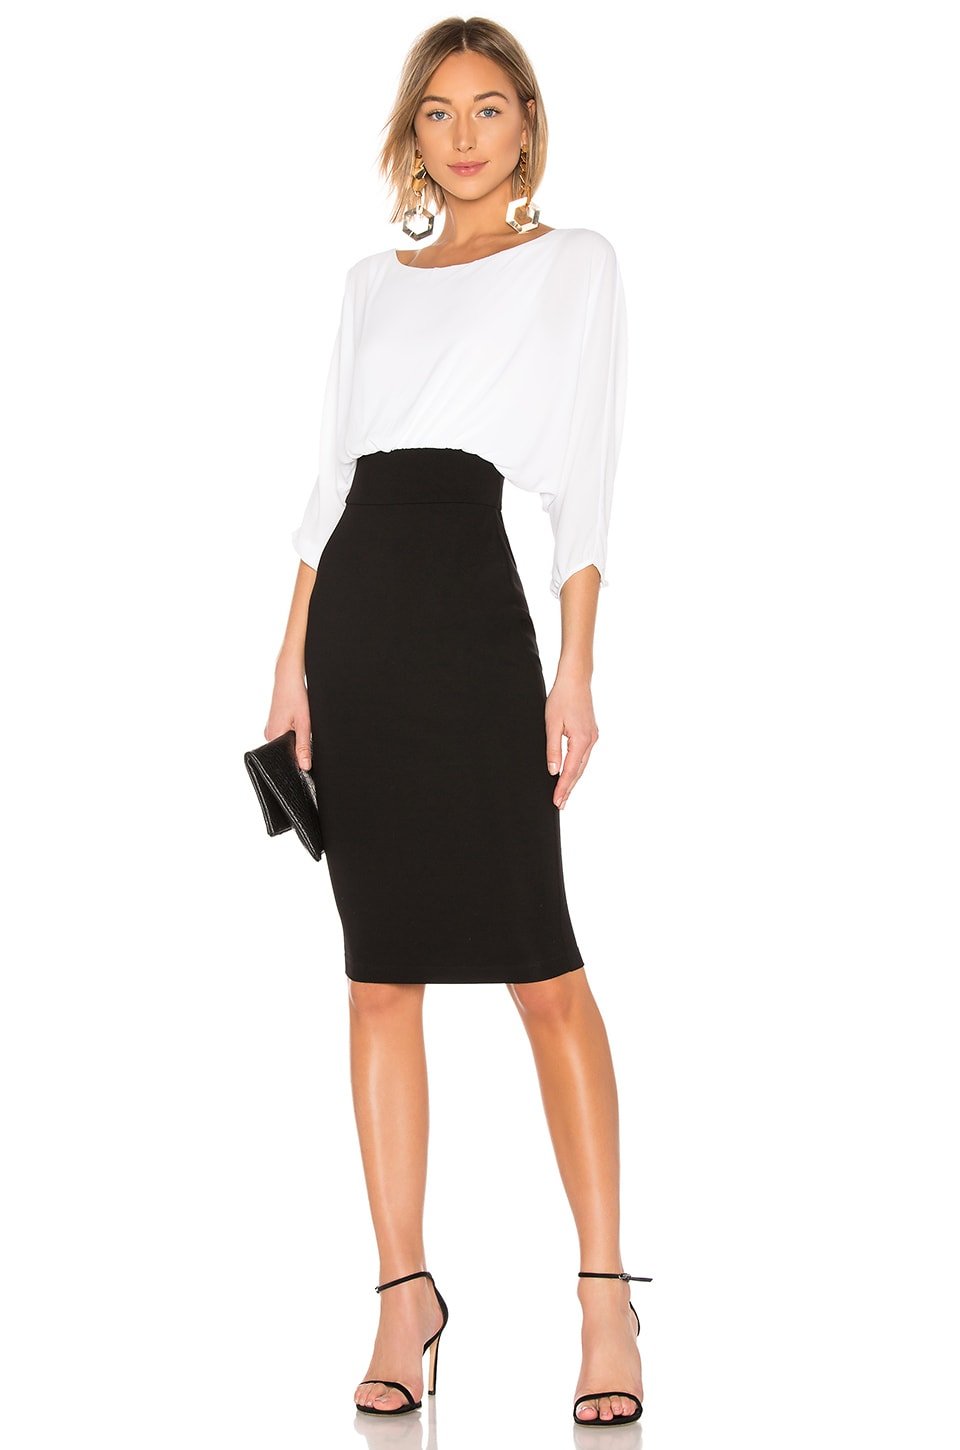 Laws Of Attraction Dress             Bailey 44                                                                                                       CA$ 263.27 2